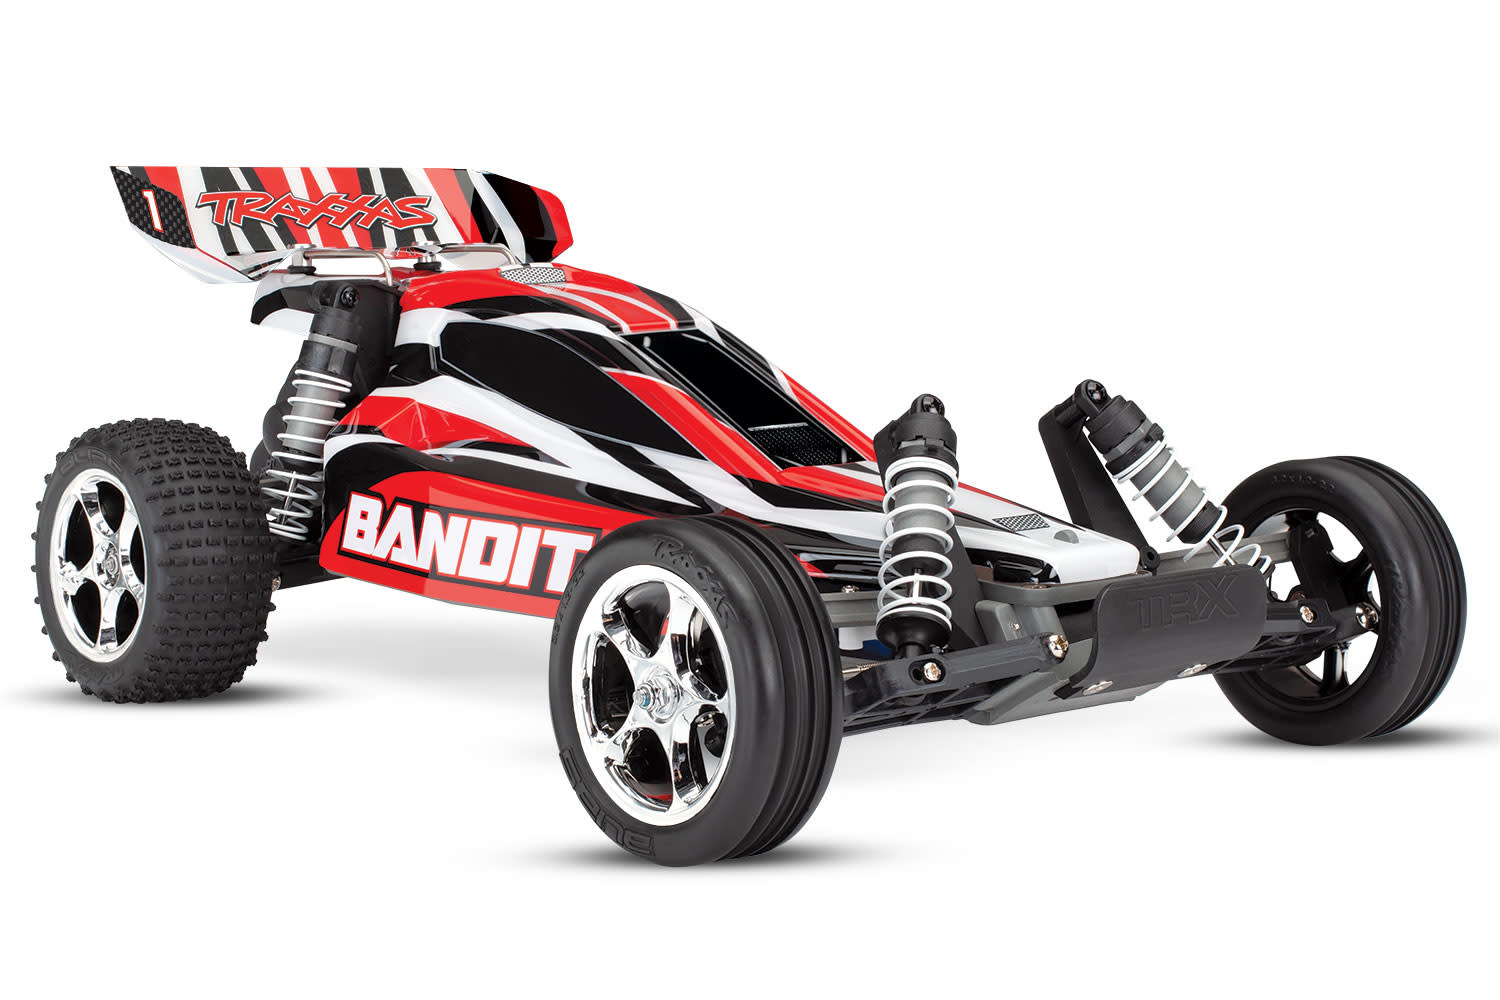 Traxxas Bandit XL-5 TQ (incl. battery/charger), Red, TRX24054-1R-6